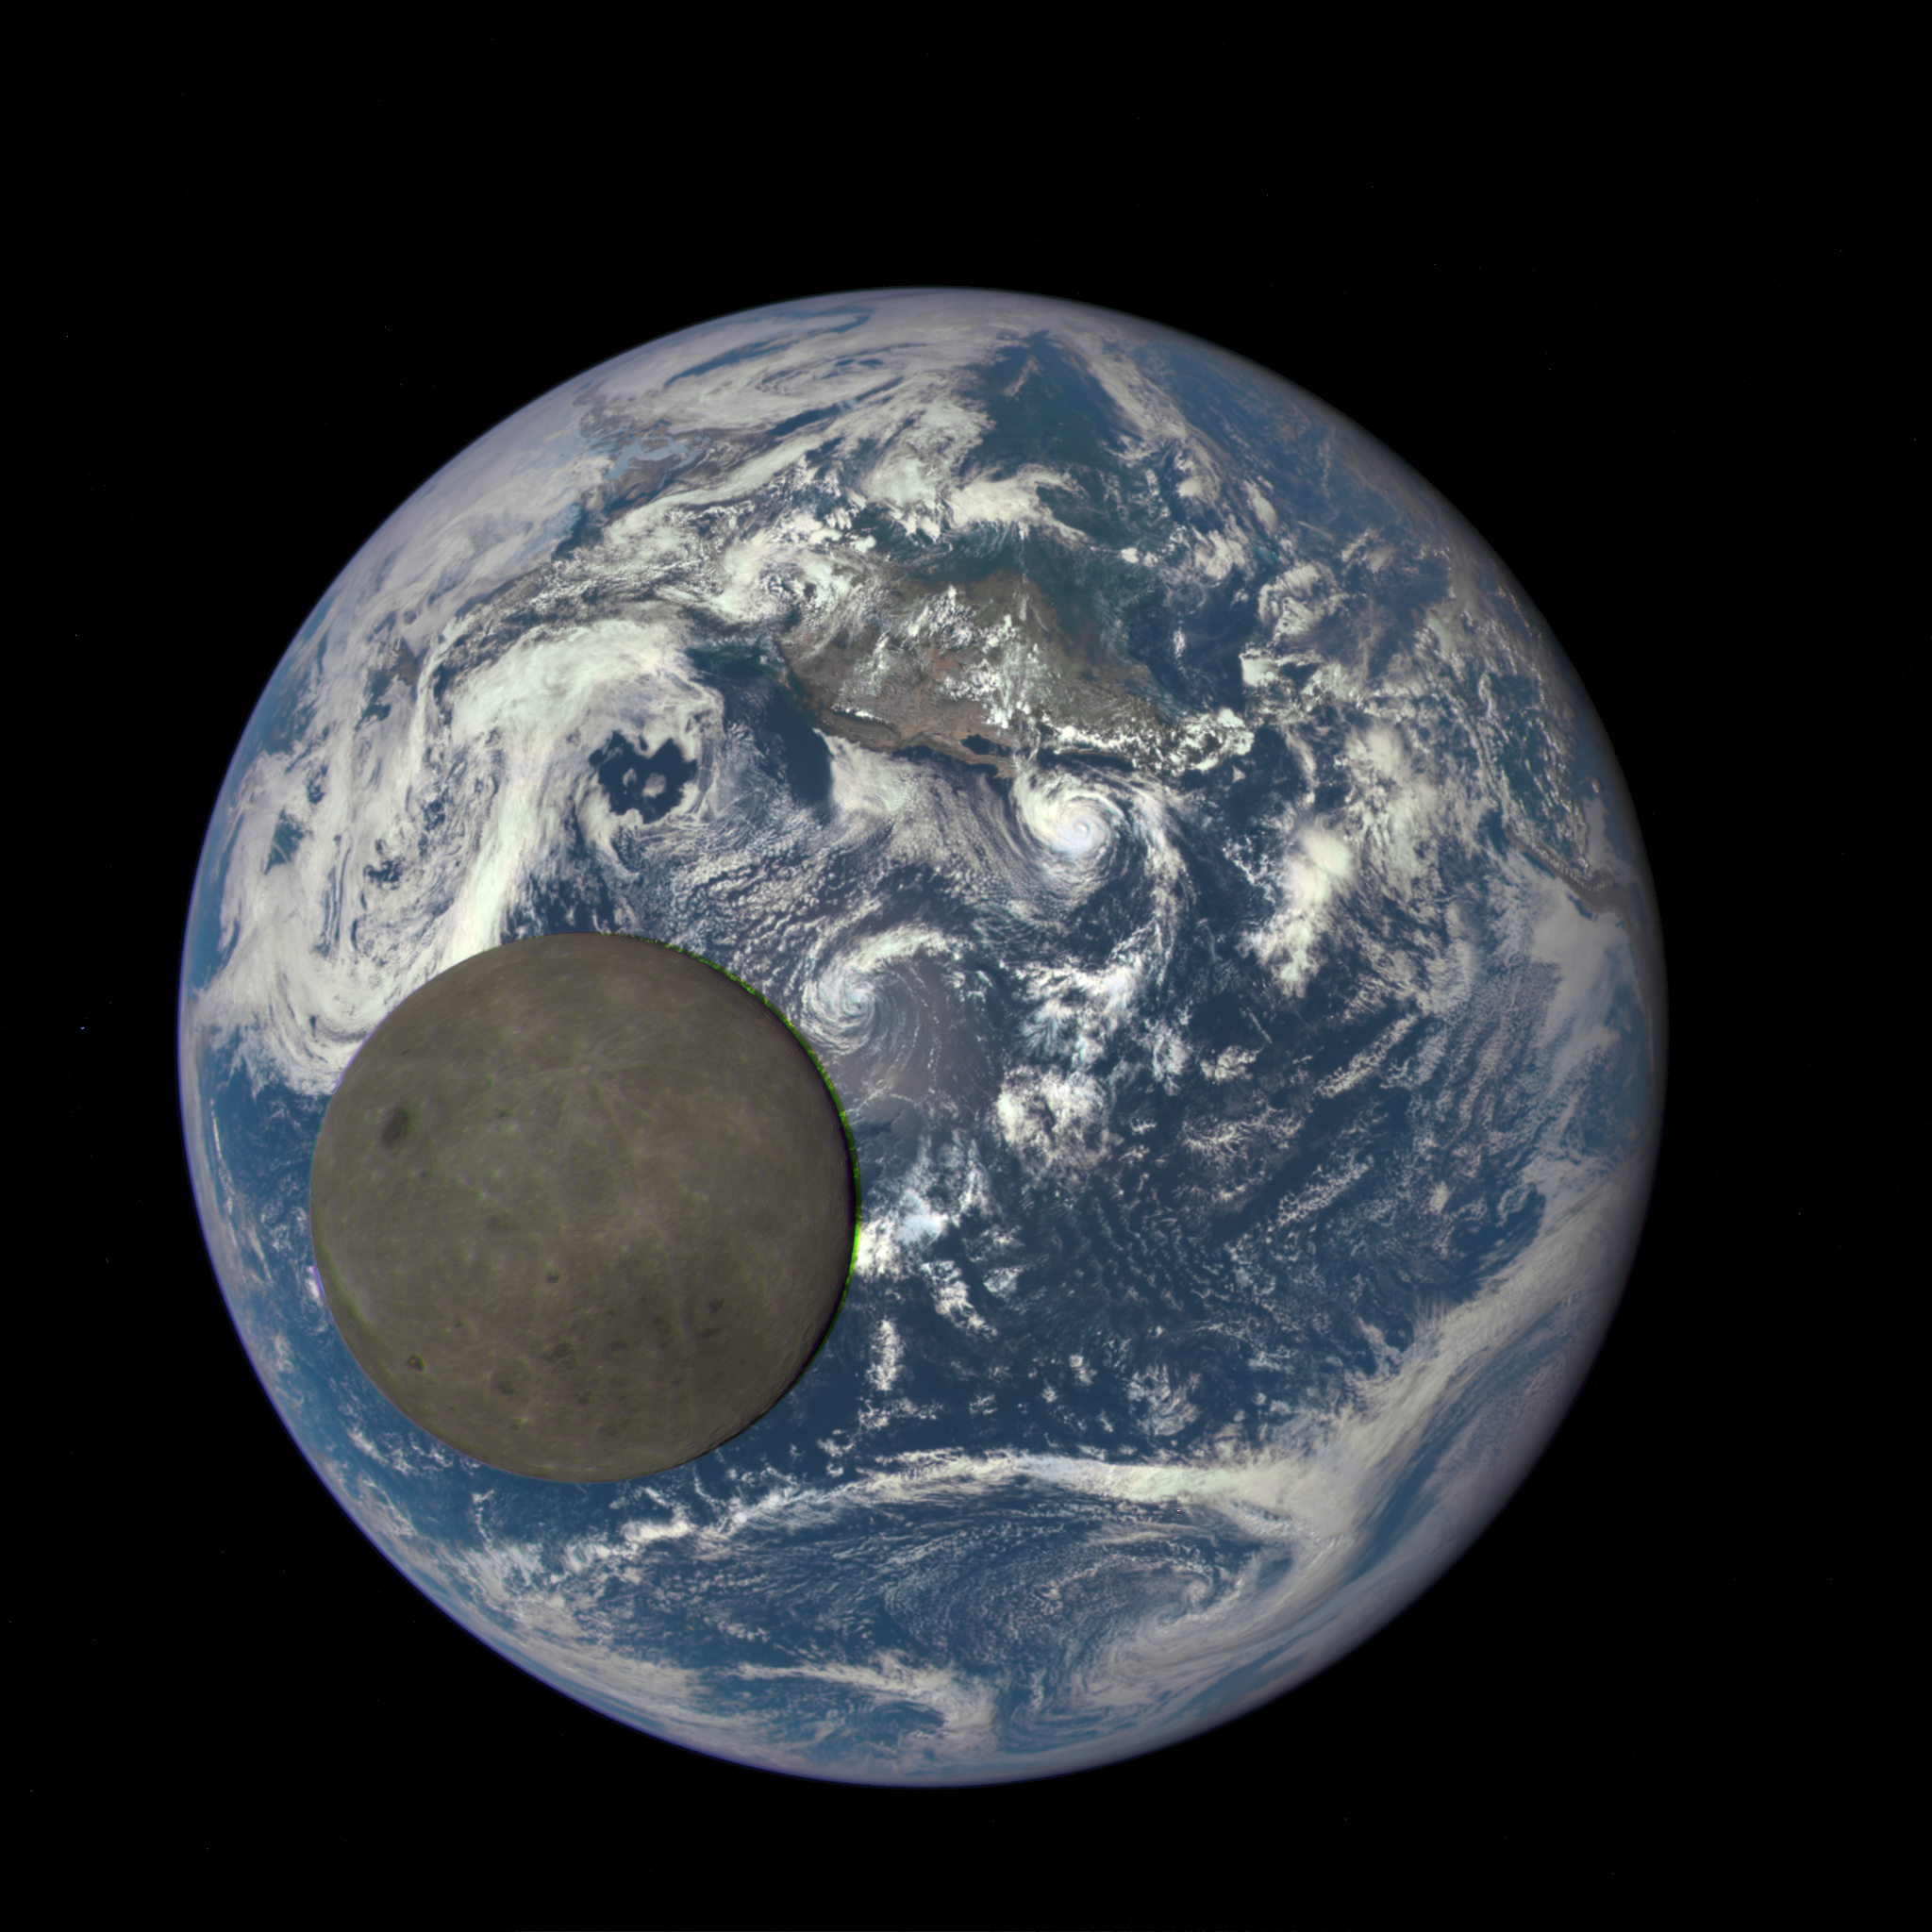 https://www.nasa.gov/sites/default/files/thumbnails/image/epicearthmoonstill.png